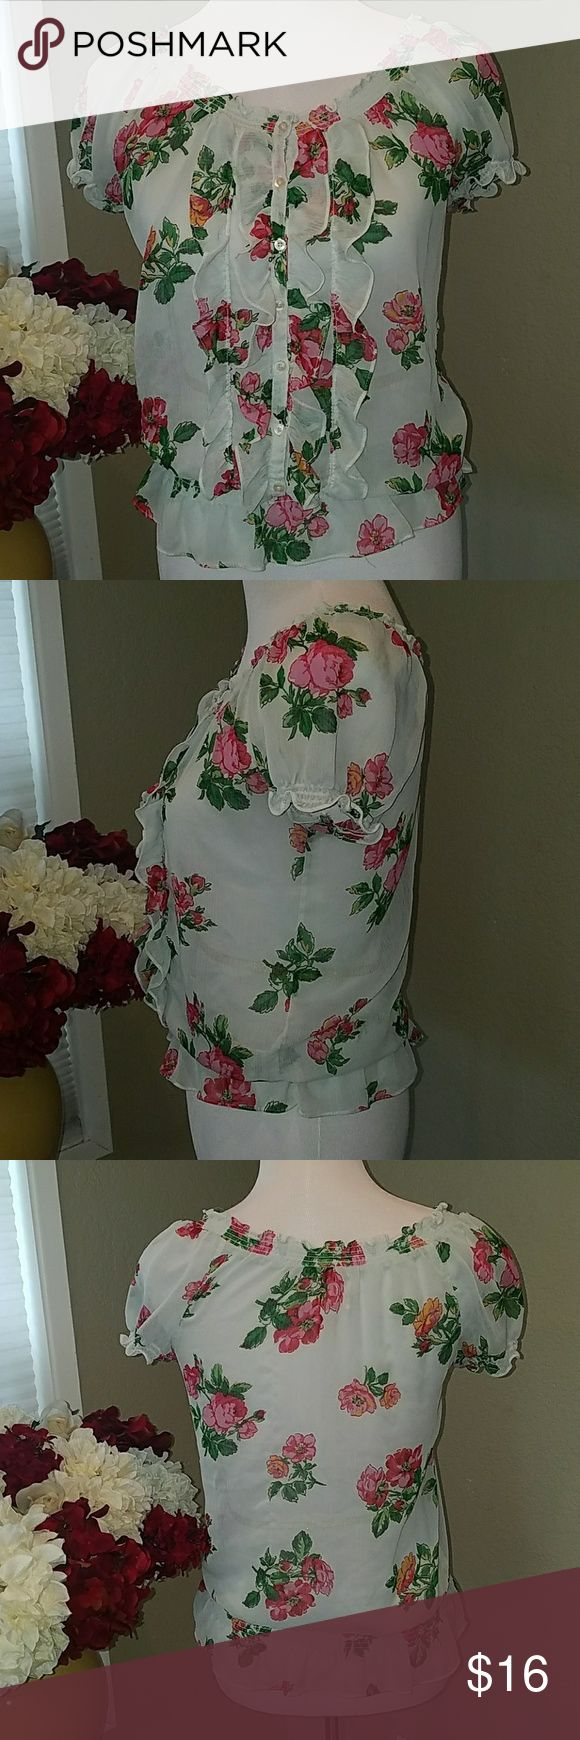 Hollister floral chiffon top Excellent used condition. Very feminine! Hollister Tops